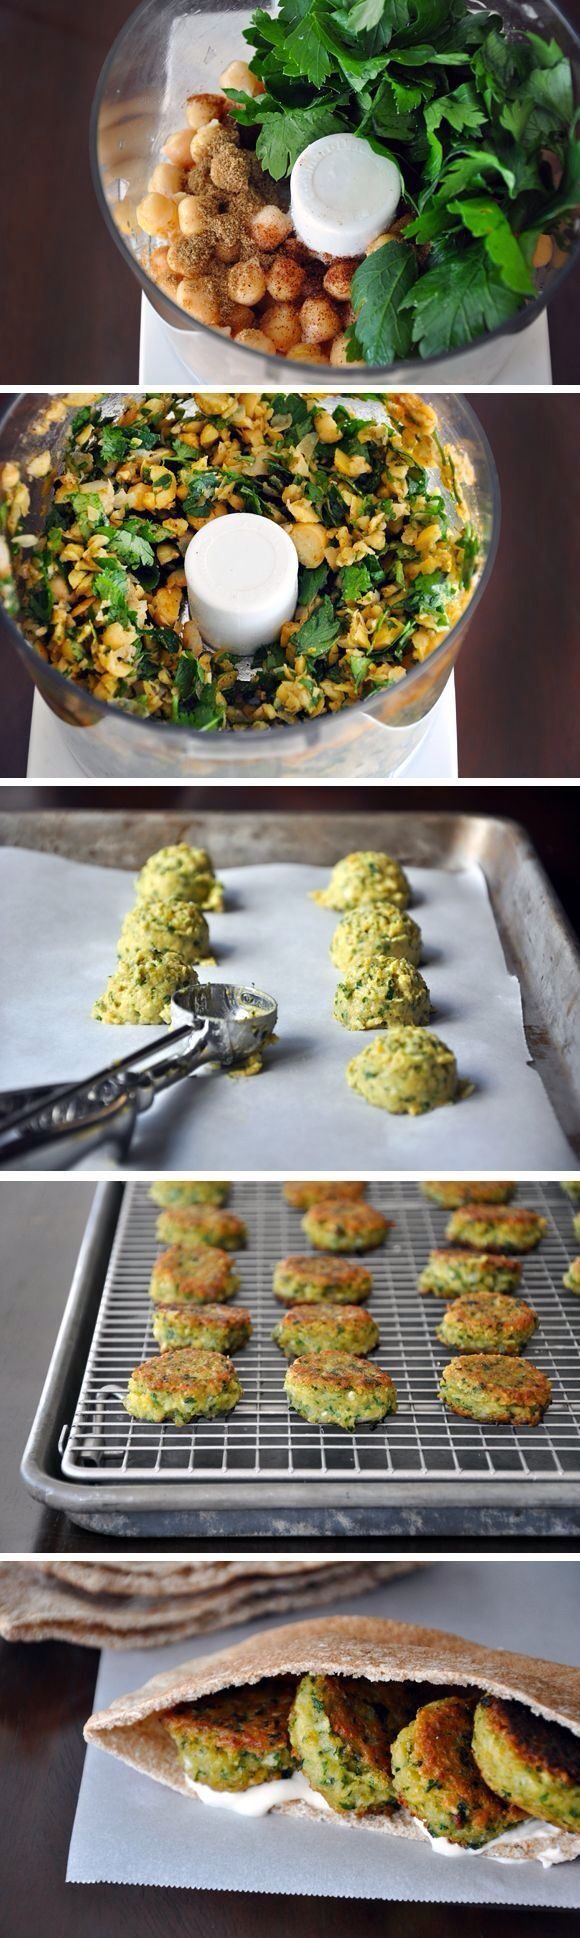 Falafel With Garlic Tahini Sauce Recipe — Dishmaps